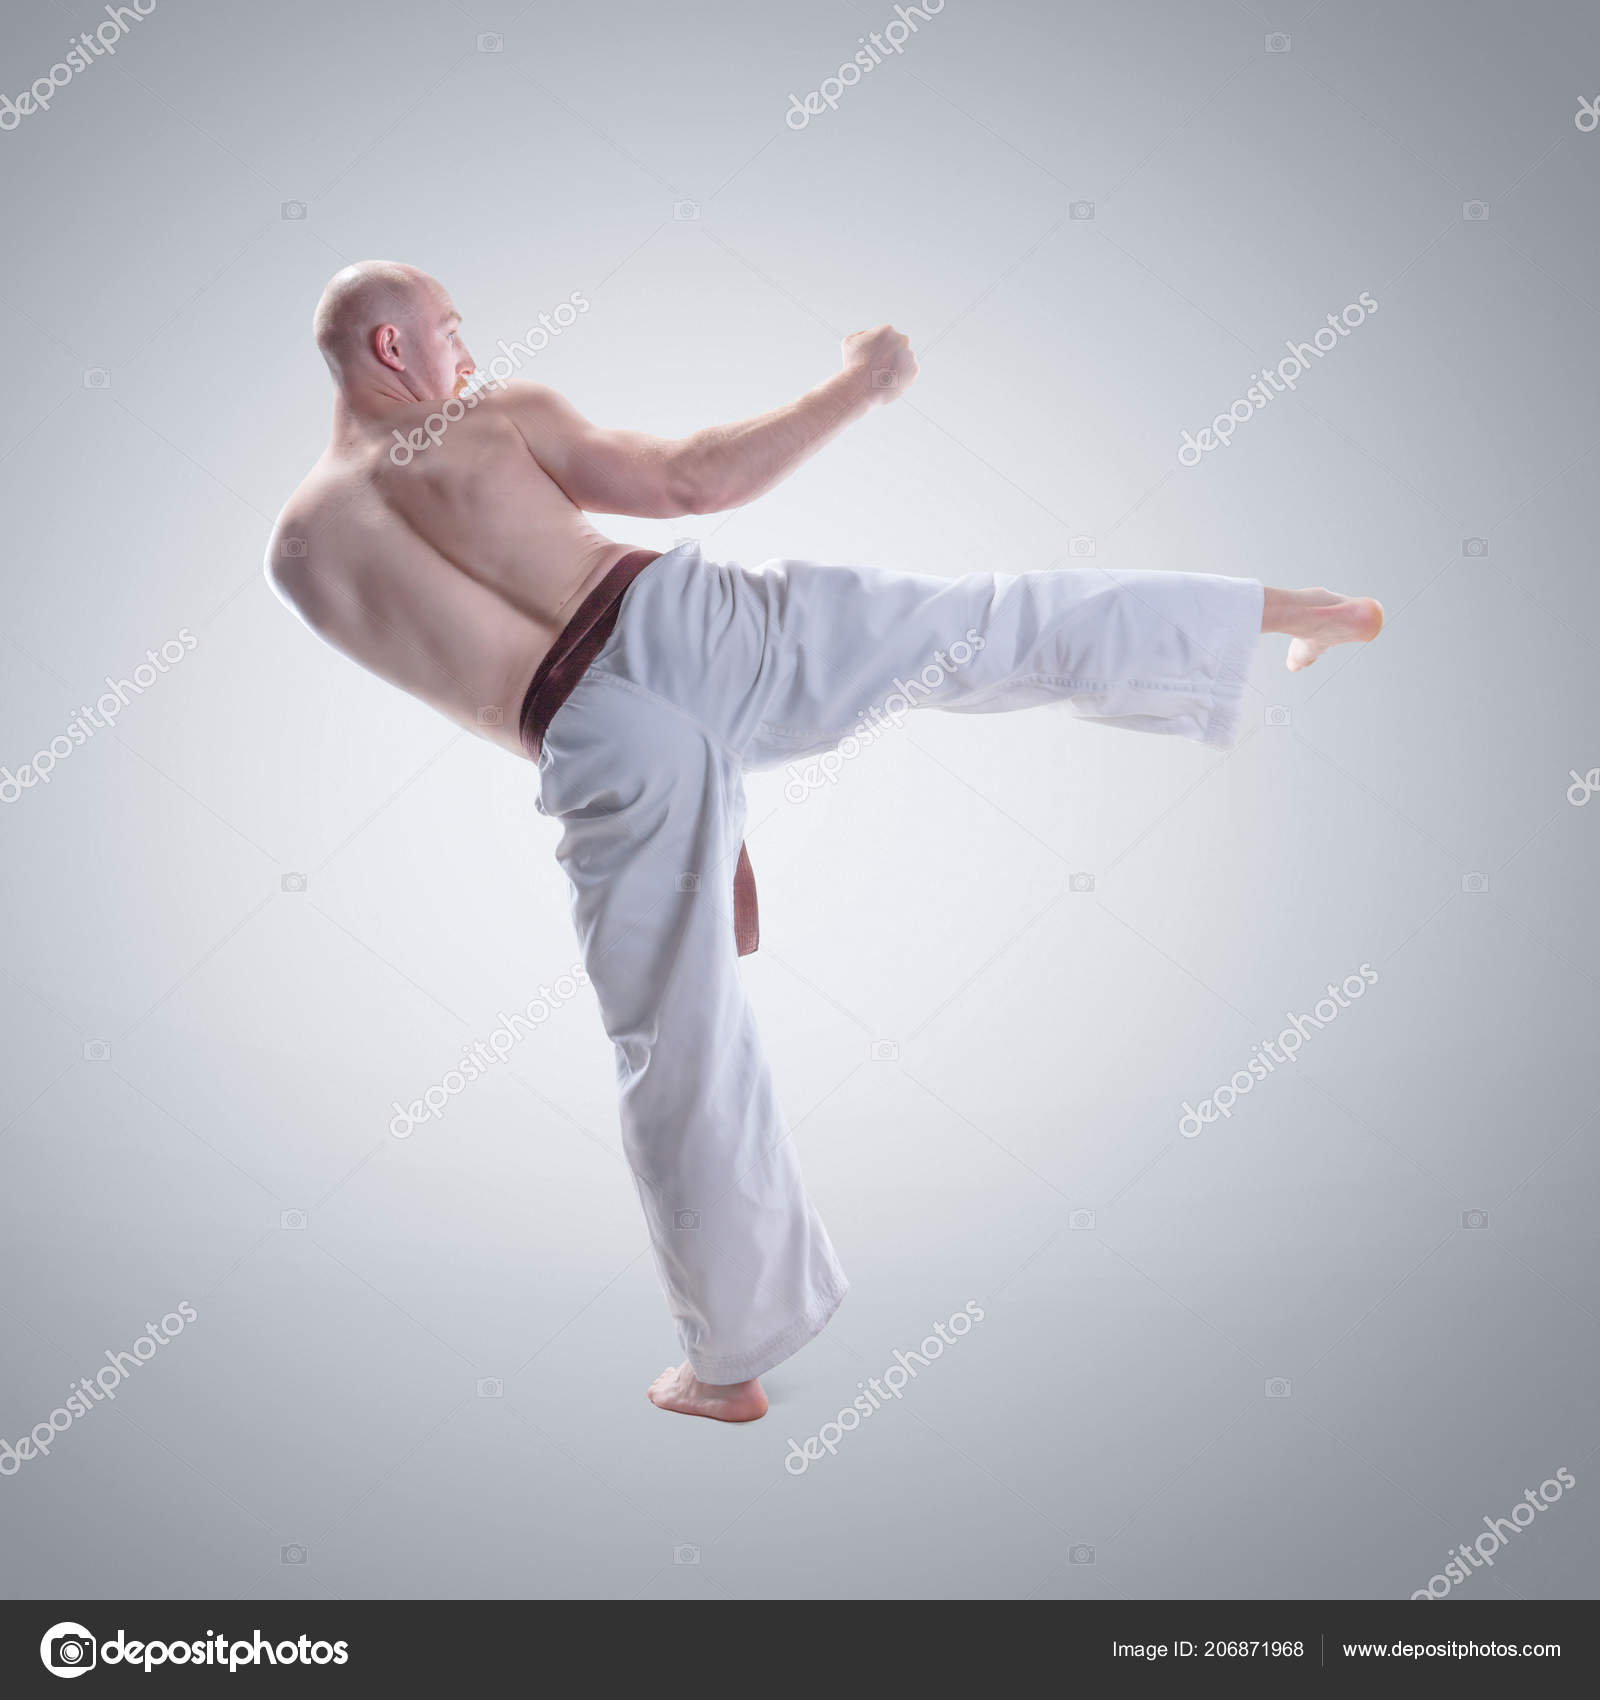 Karate Man Kimono Demonstrate Pose Stock Photo